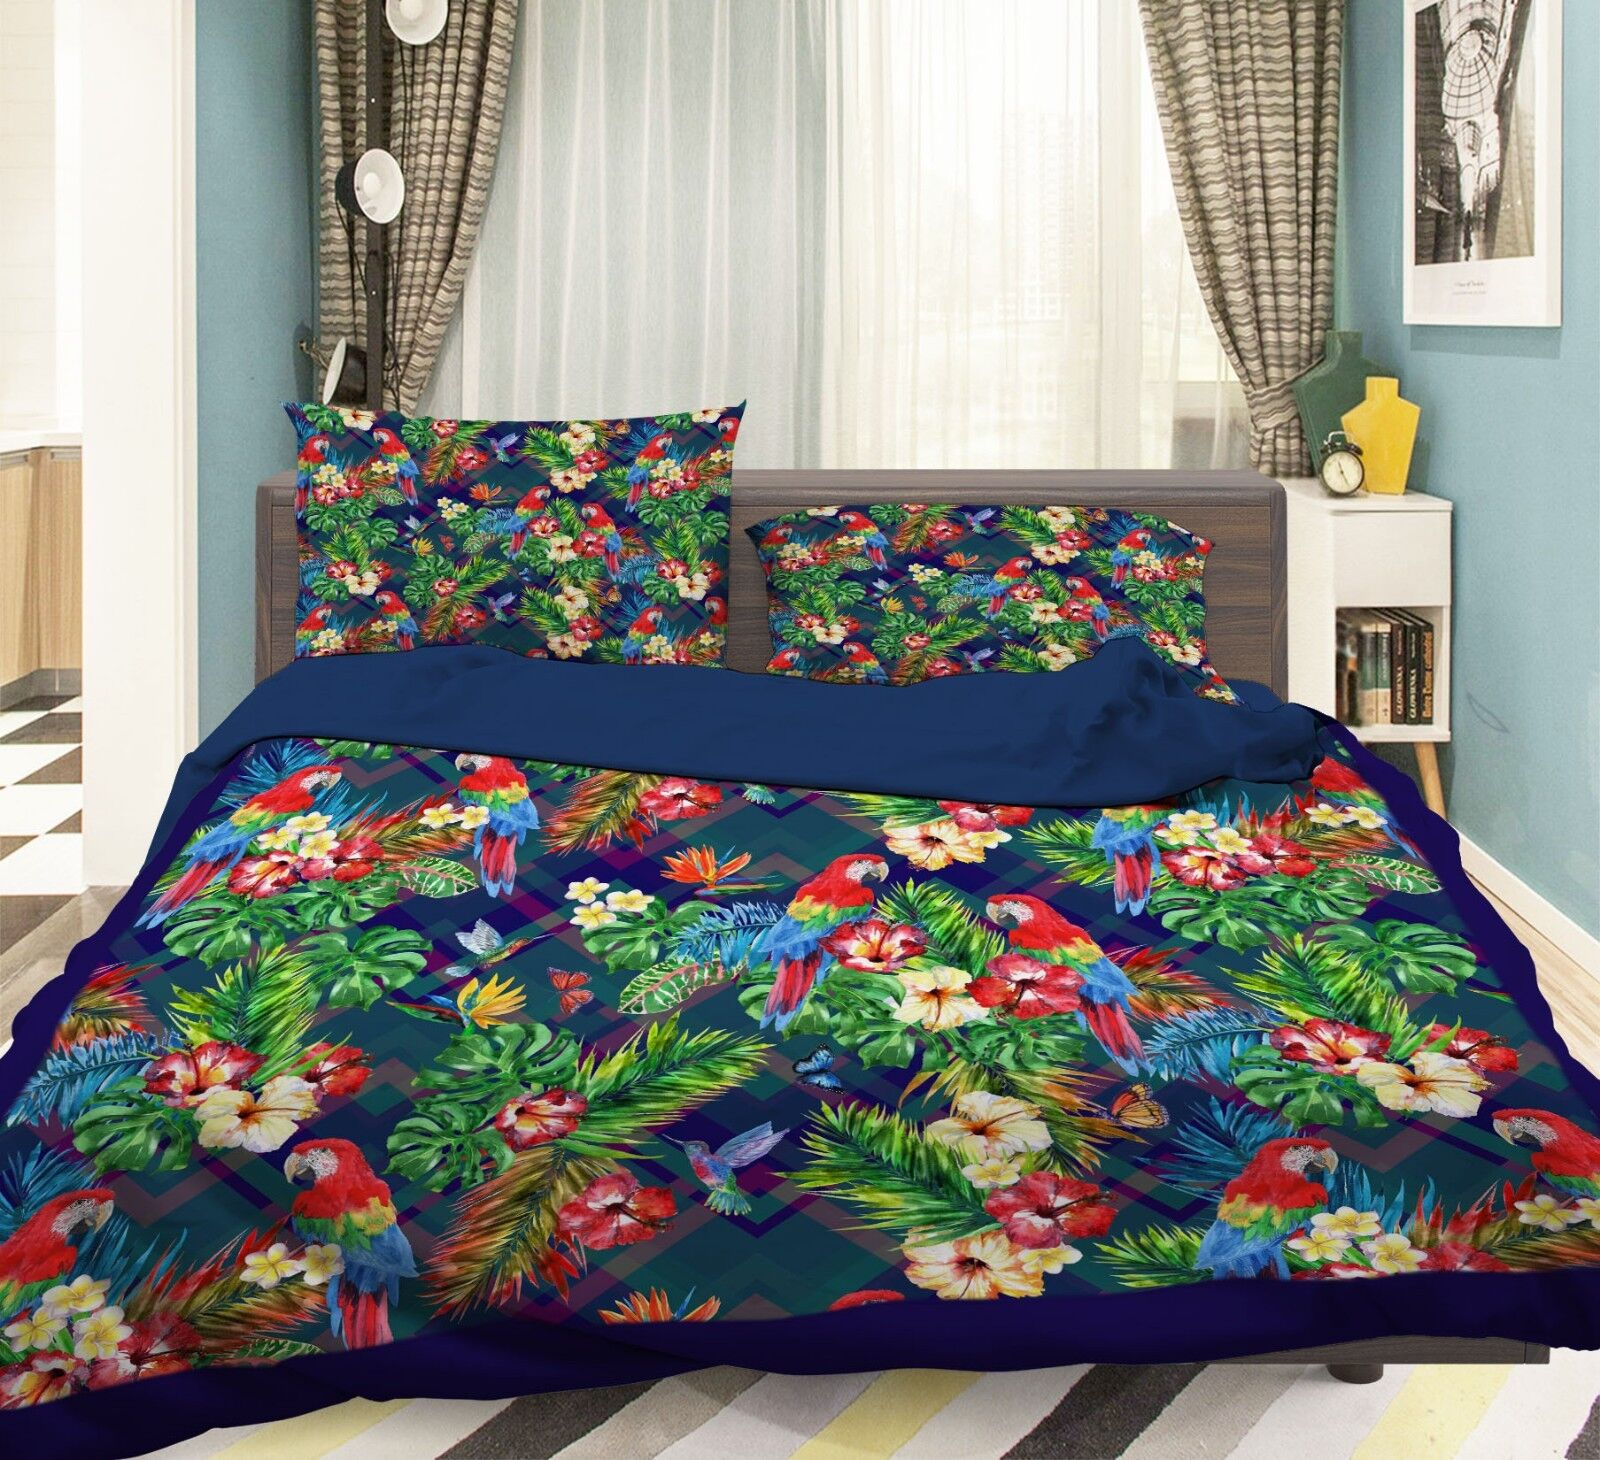 3D Parrot Leaves 687 Bed Pillowcases Quilt Duvet Cover Set Single King UK Summer